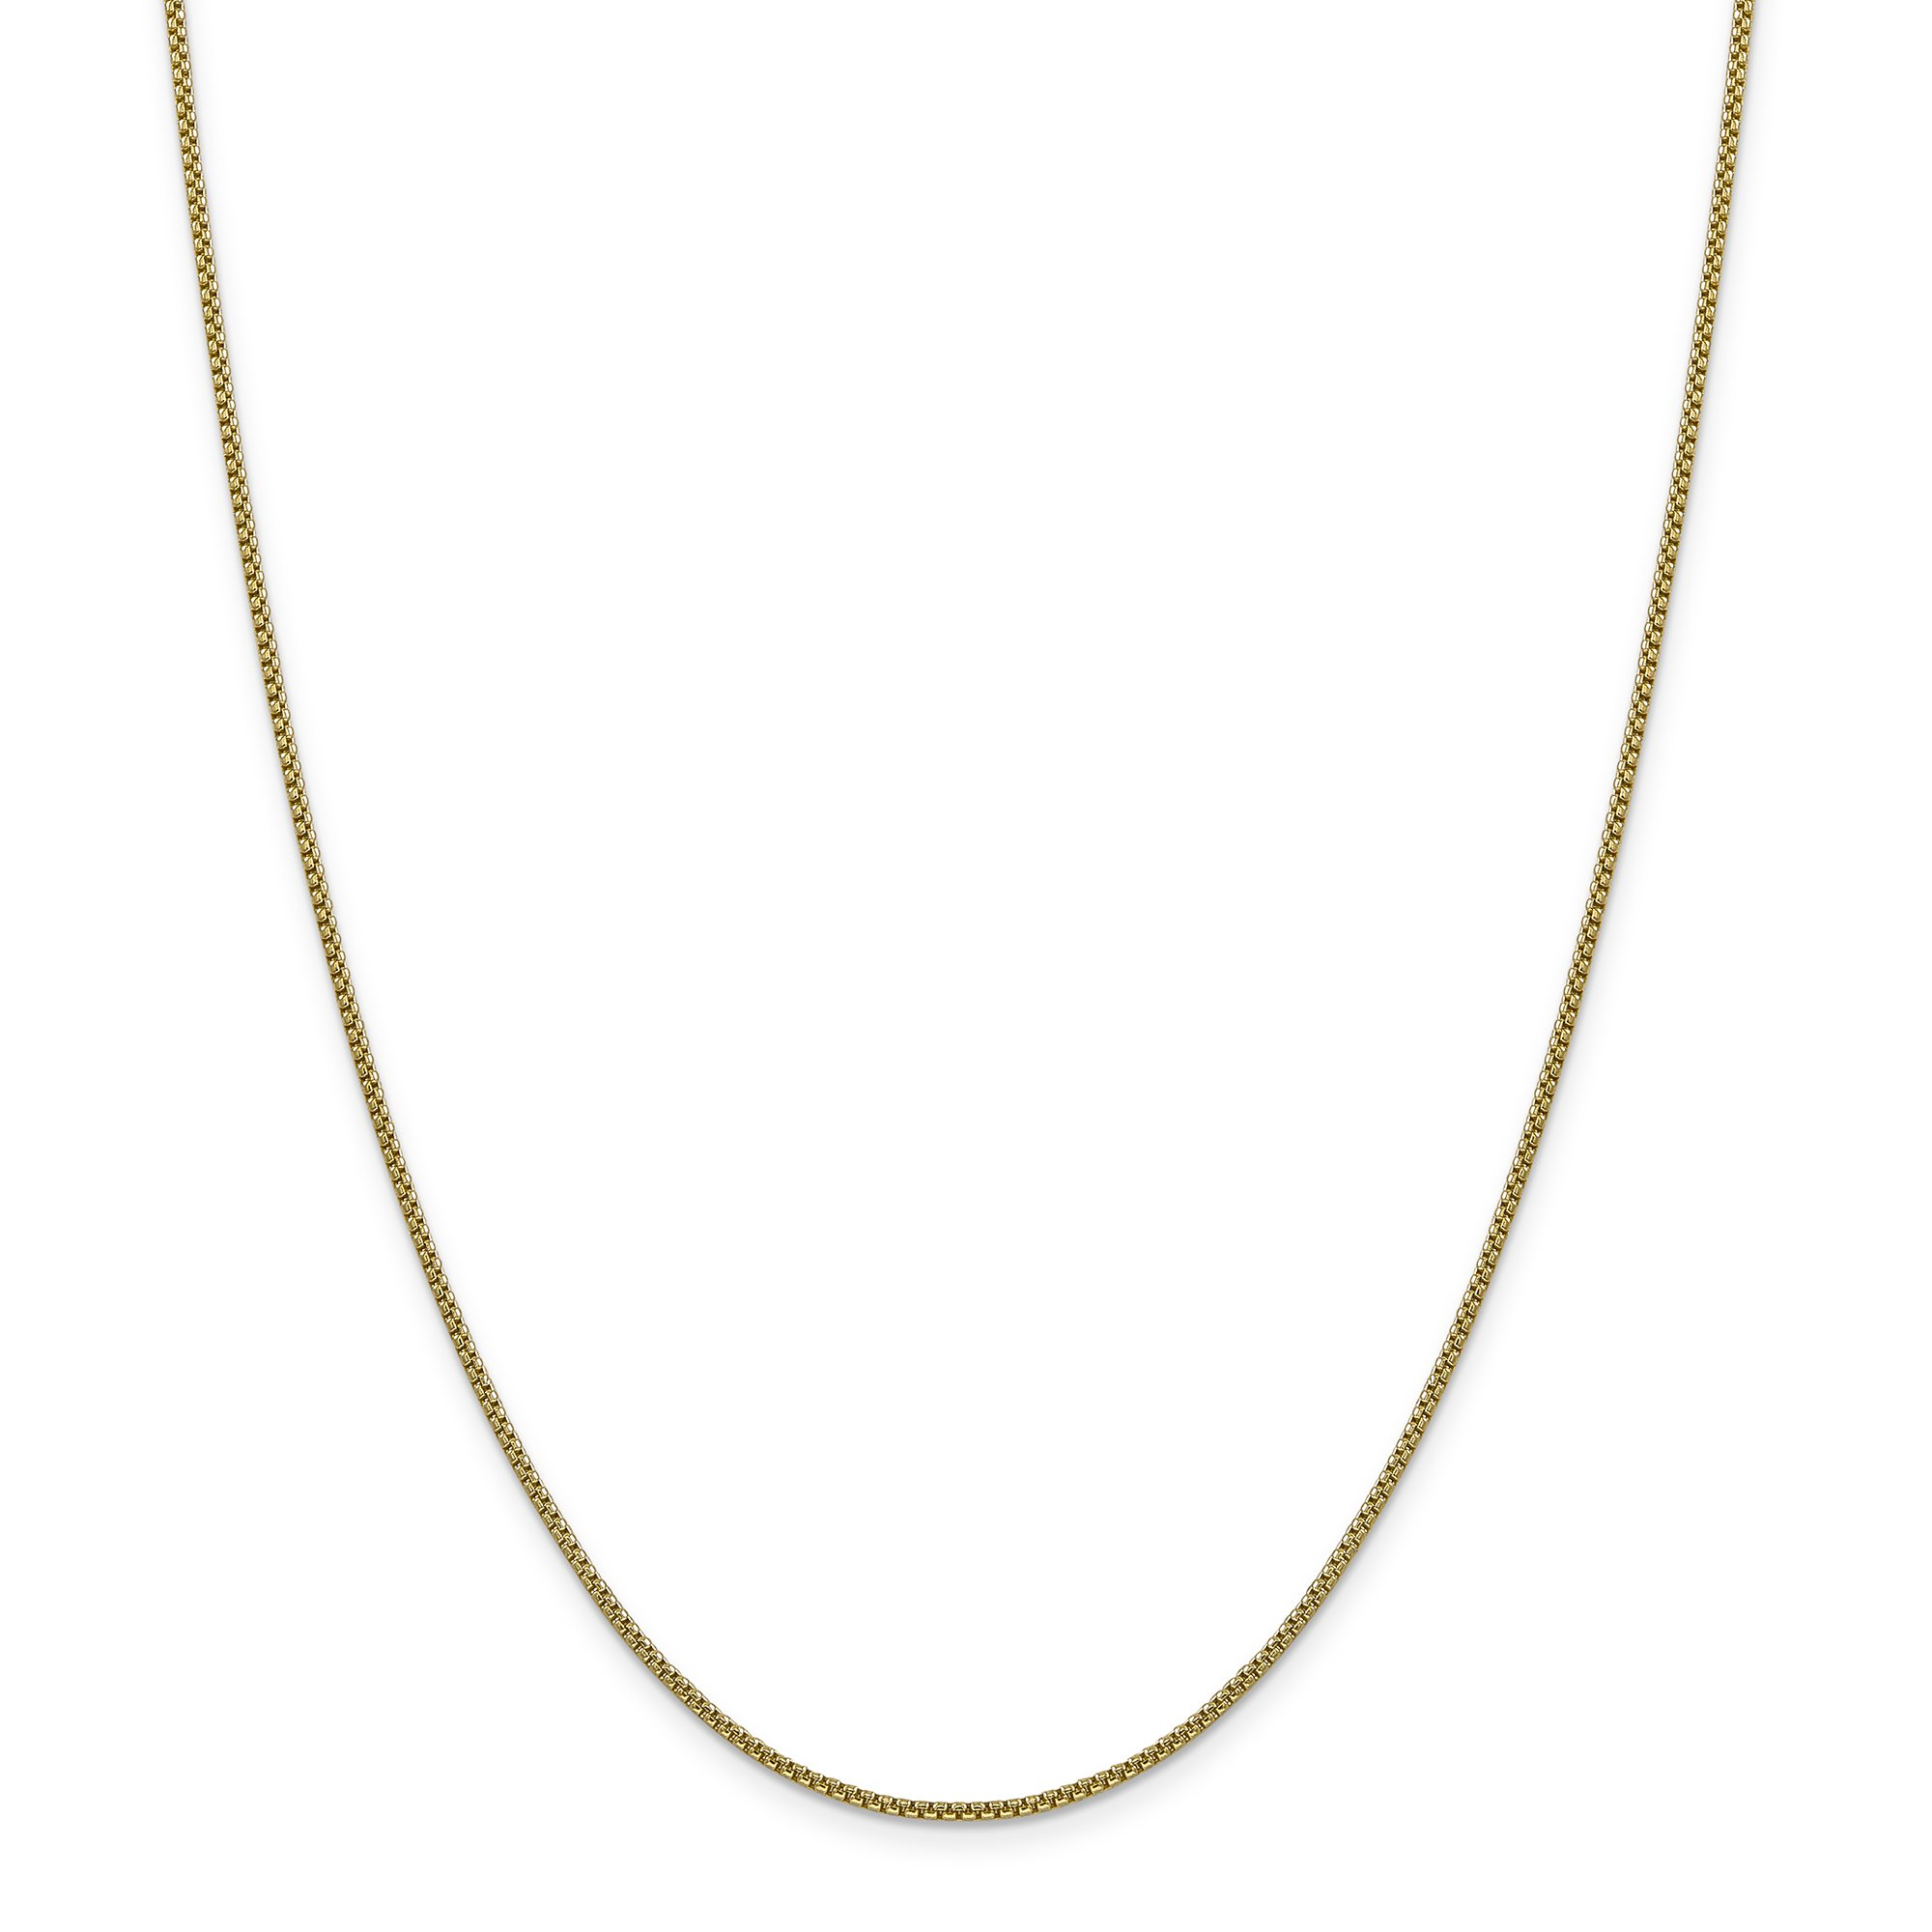 ICE CARATS 14k Yellow Gold 1.5mm Round Link Box Chain Necklace 16 Inch Fine Jewelry Gift Set For Women Heart